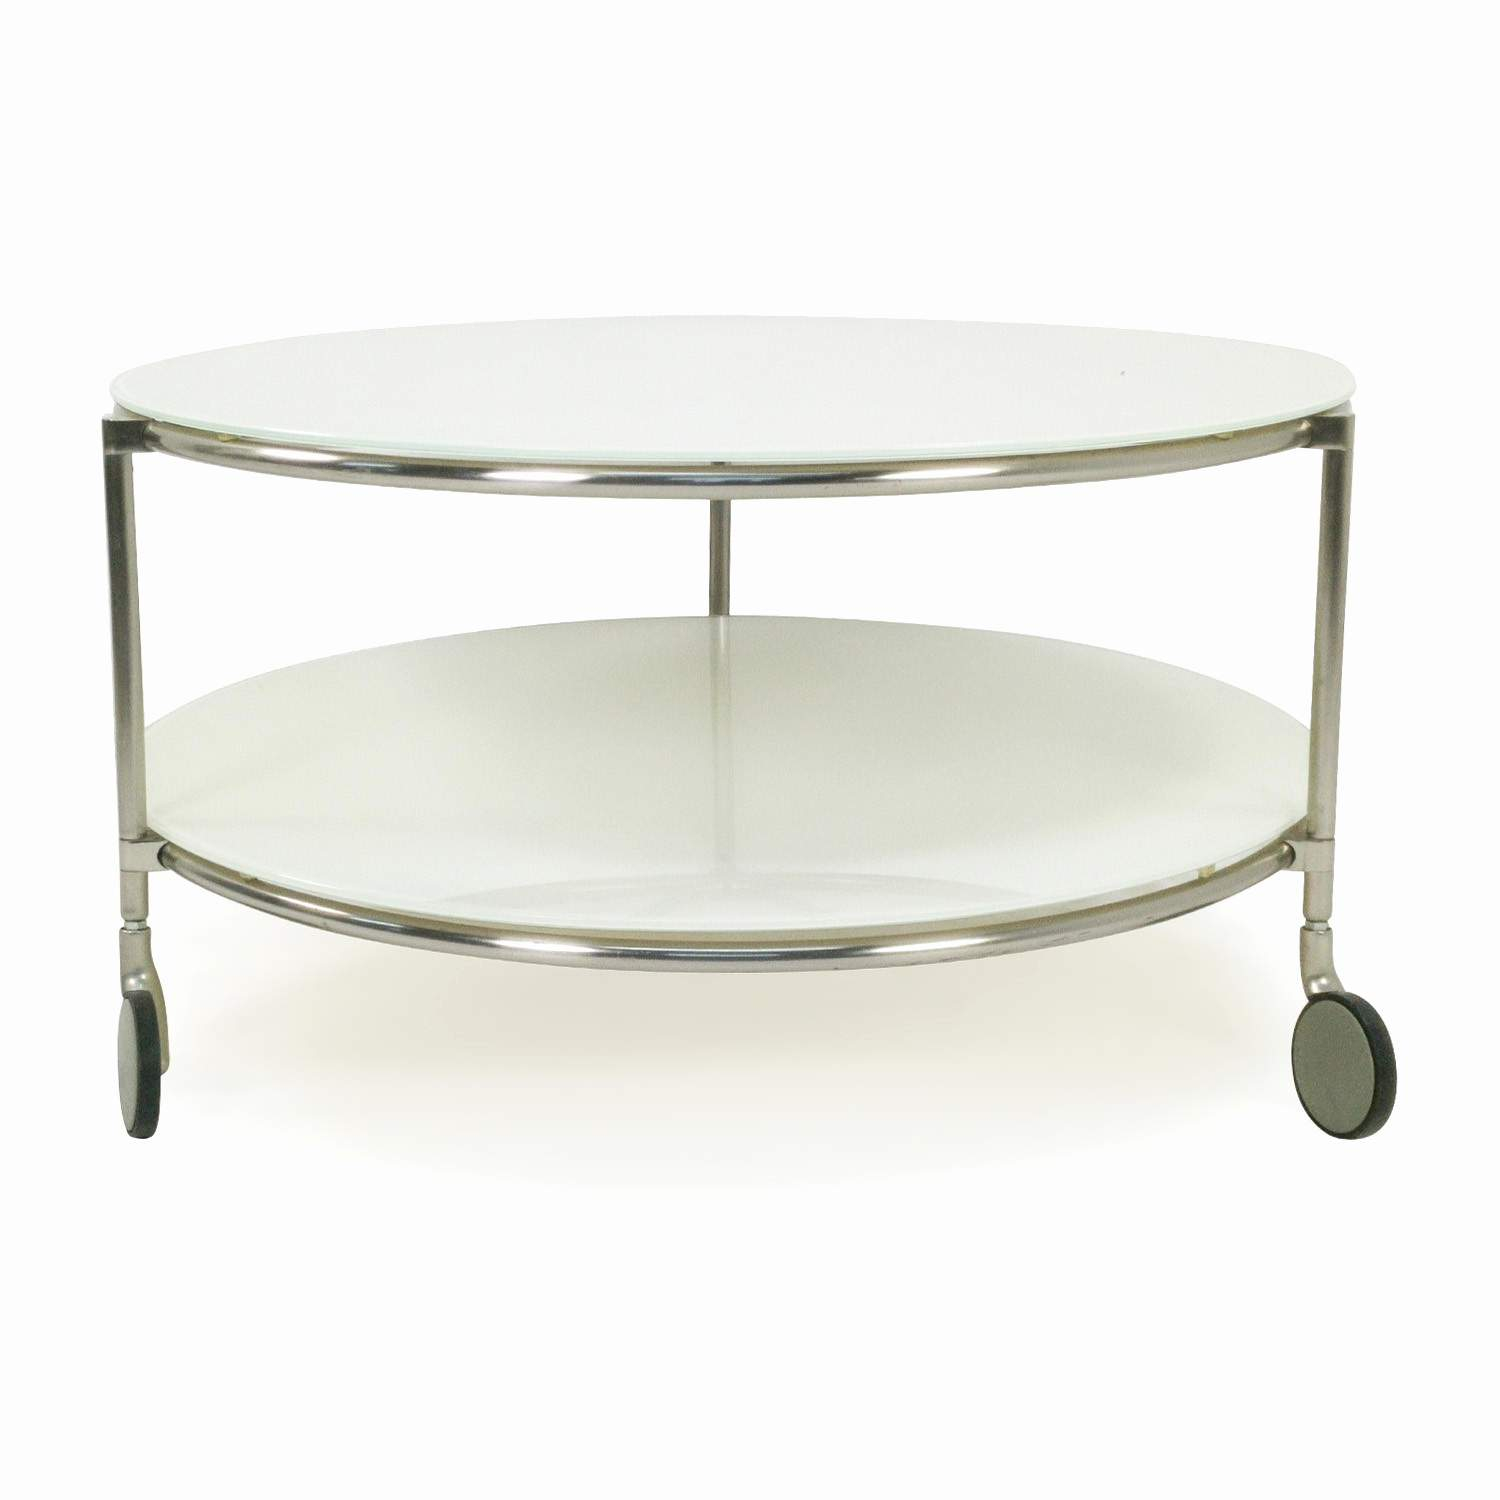 Round Coffee Table On Wheels Ikea Round White Glass Coffee Table On Wheels Round